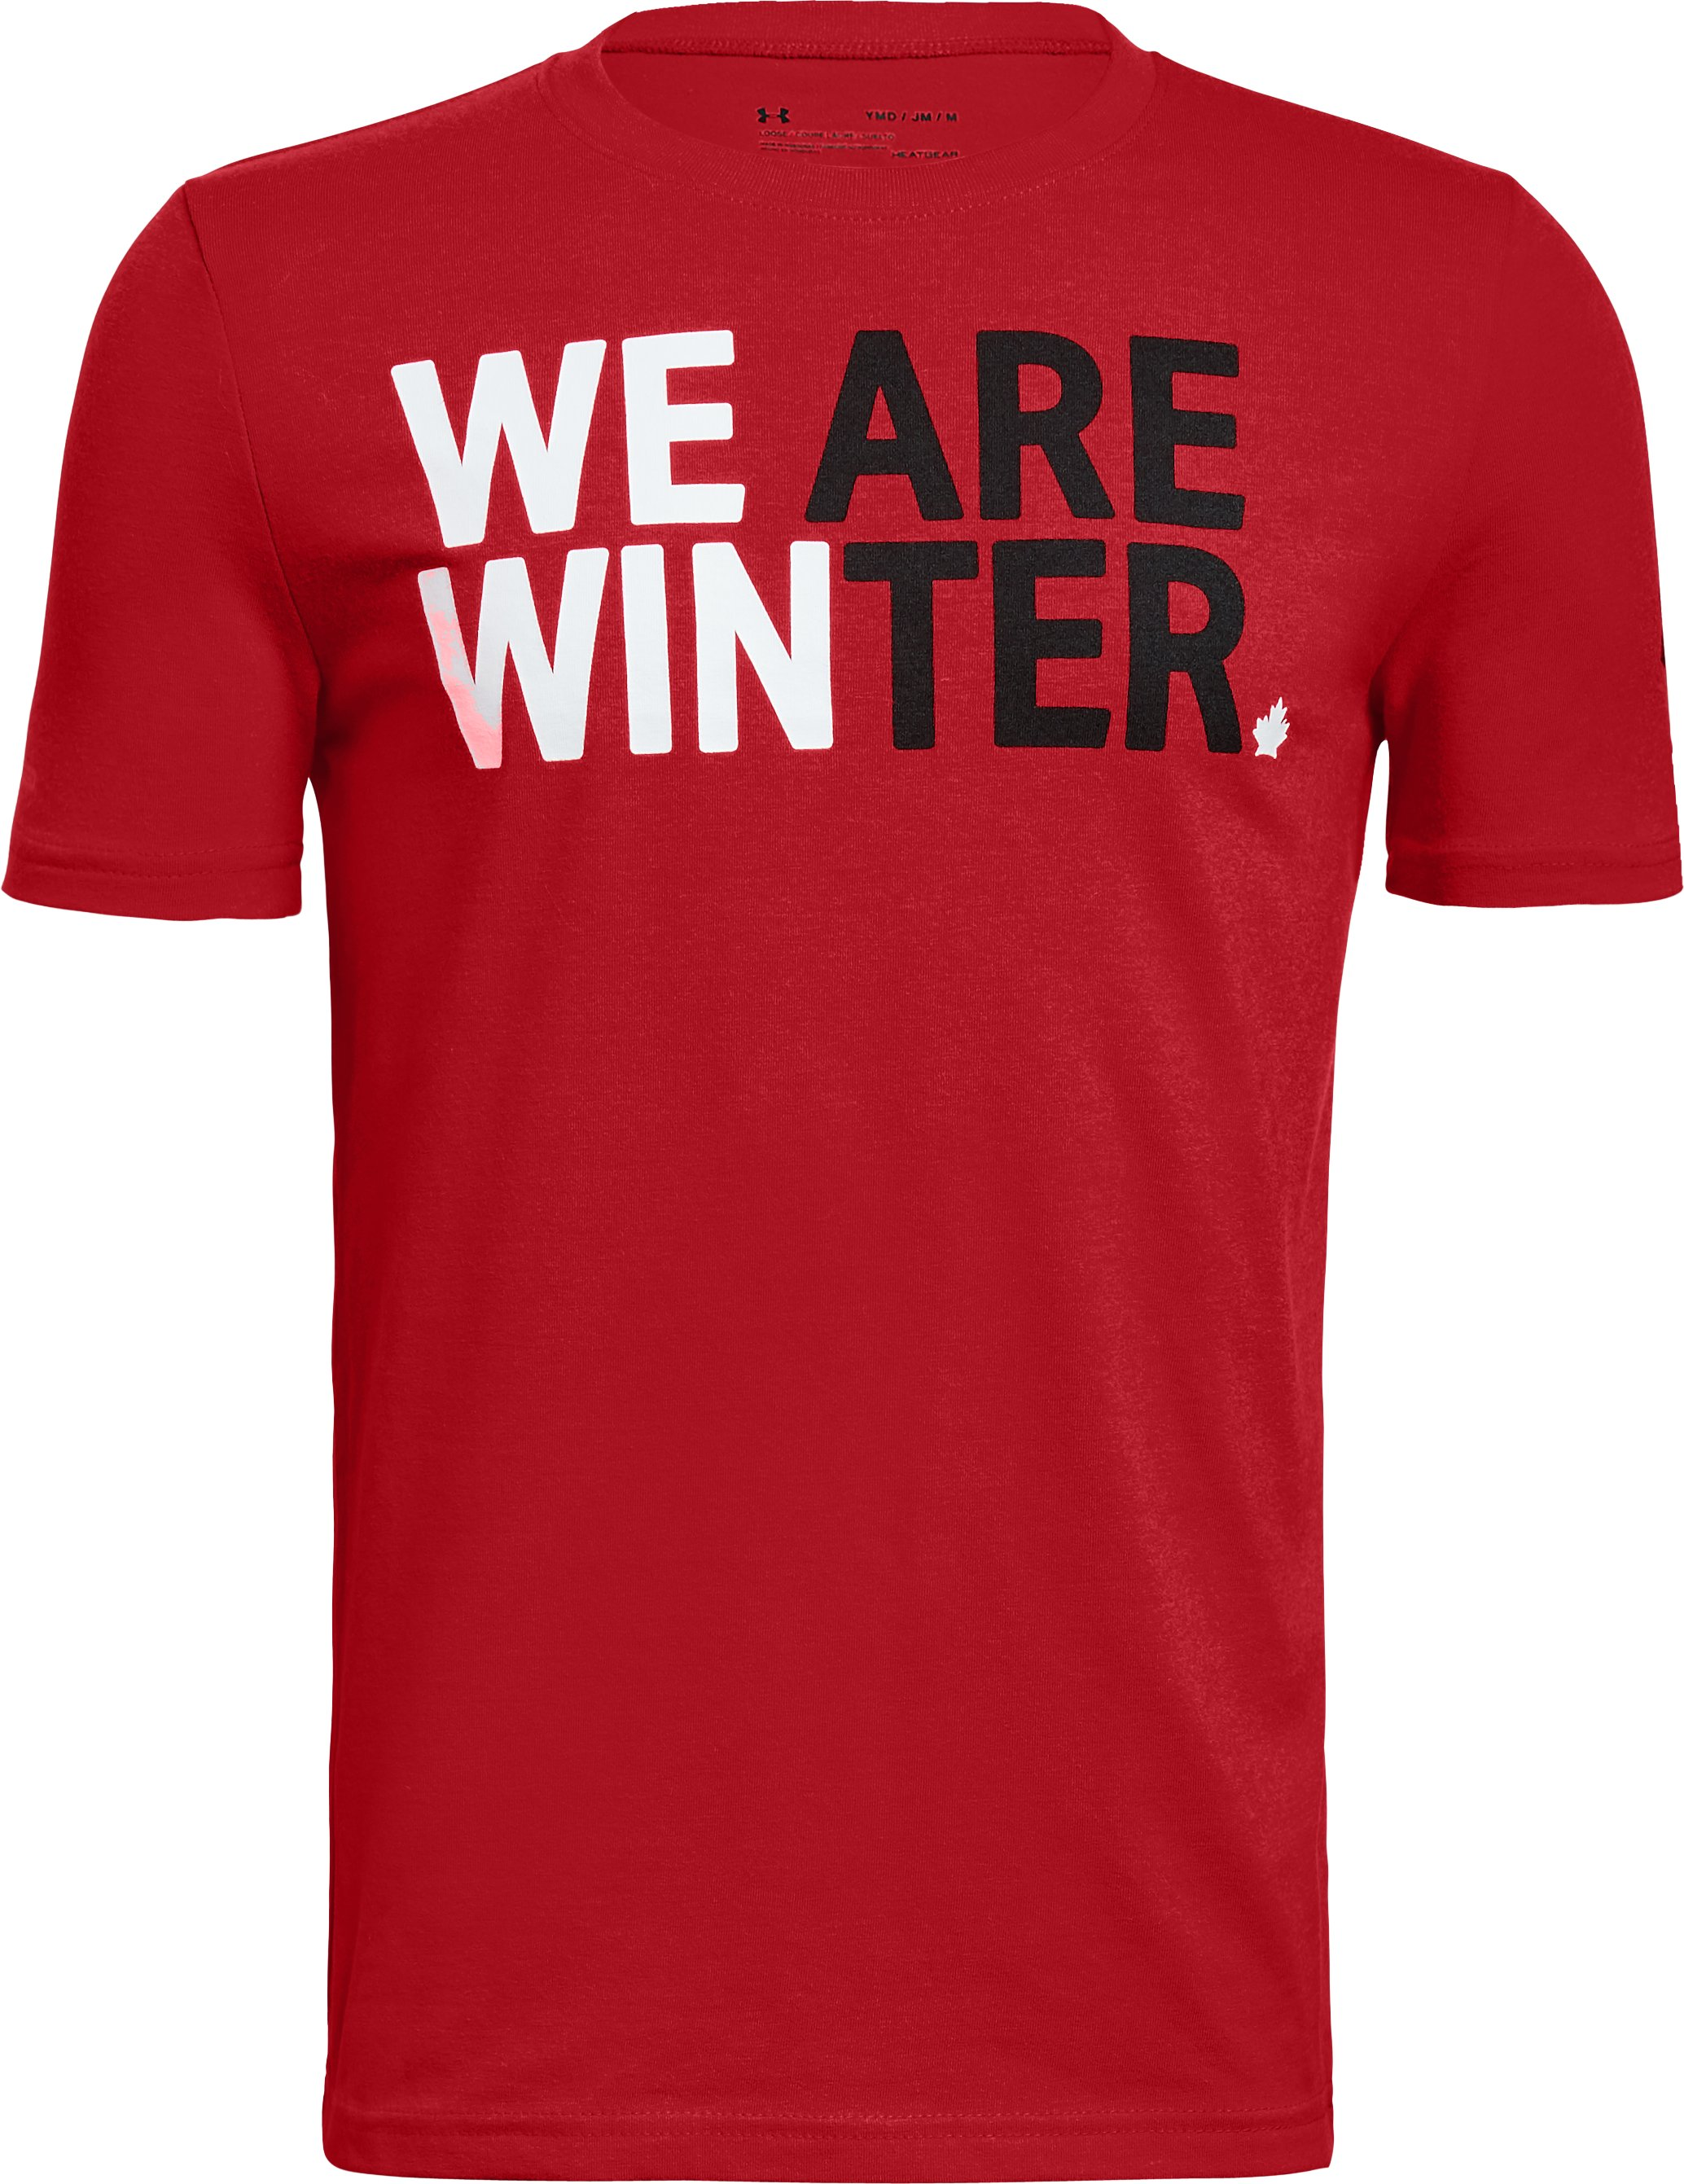 Boys' UA Team Canada Performance We Are Winter T-Shirt, Red